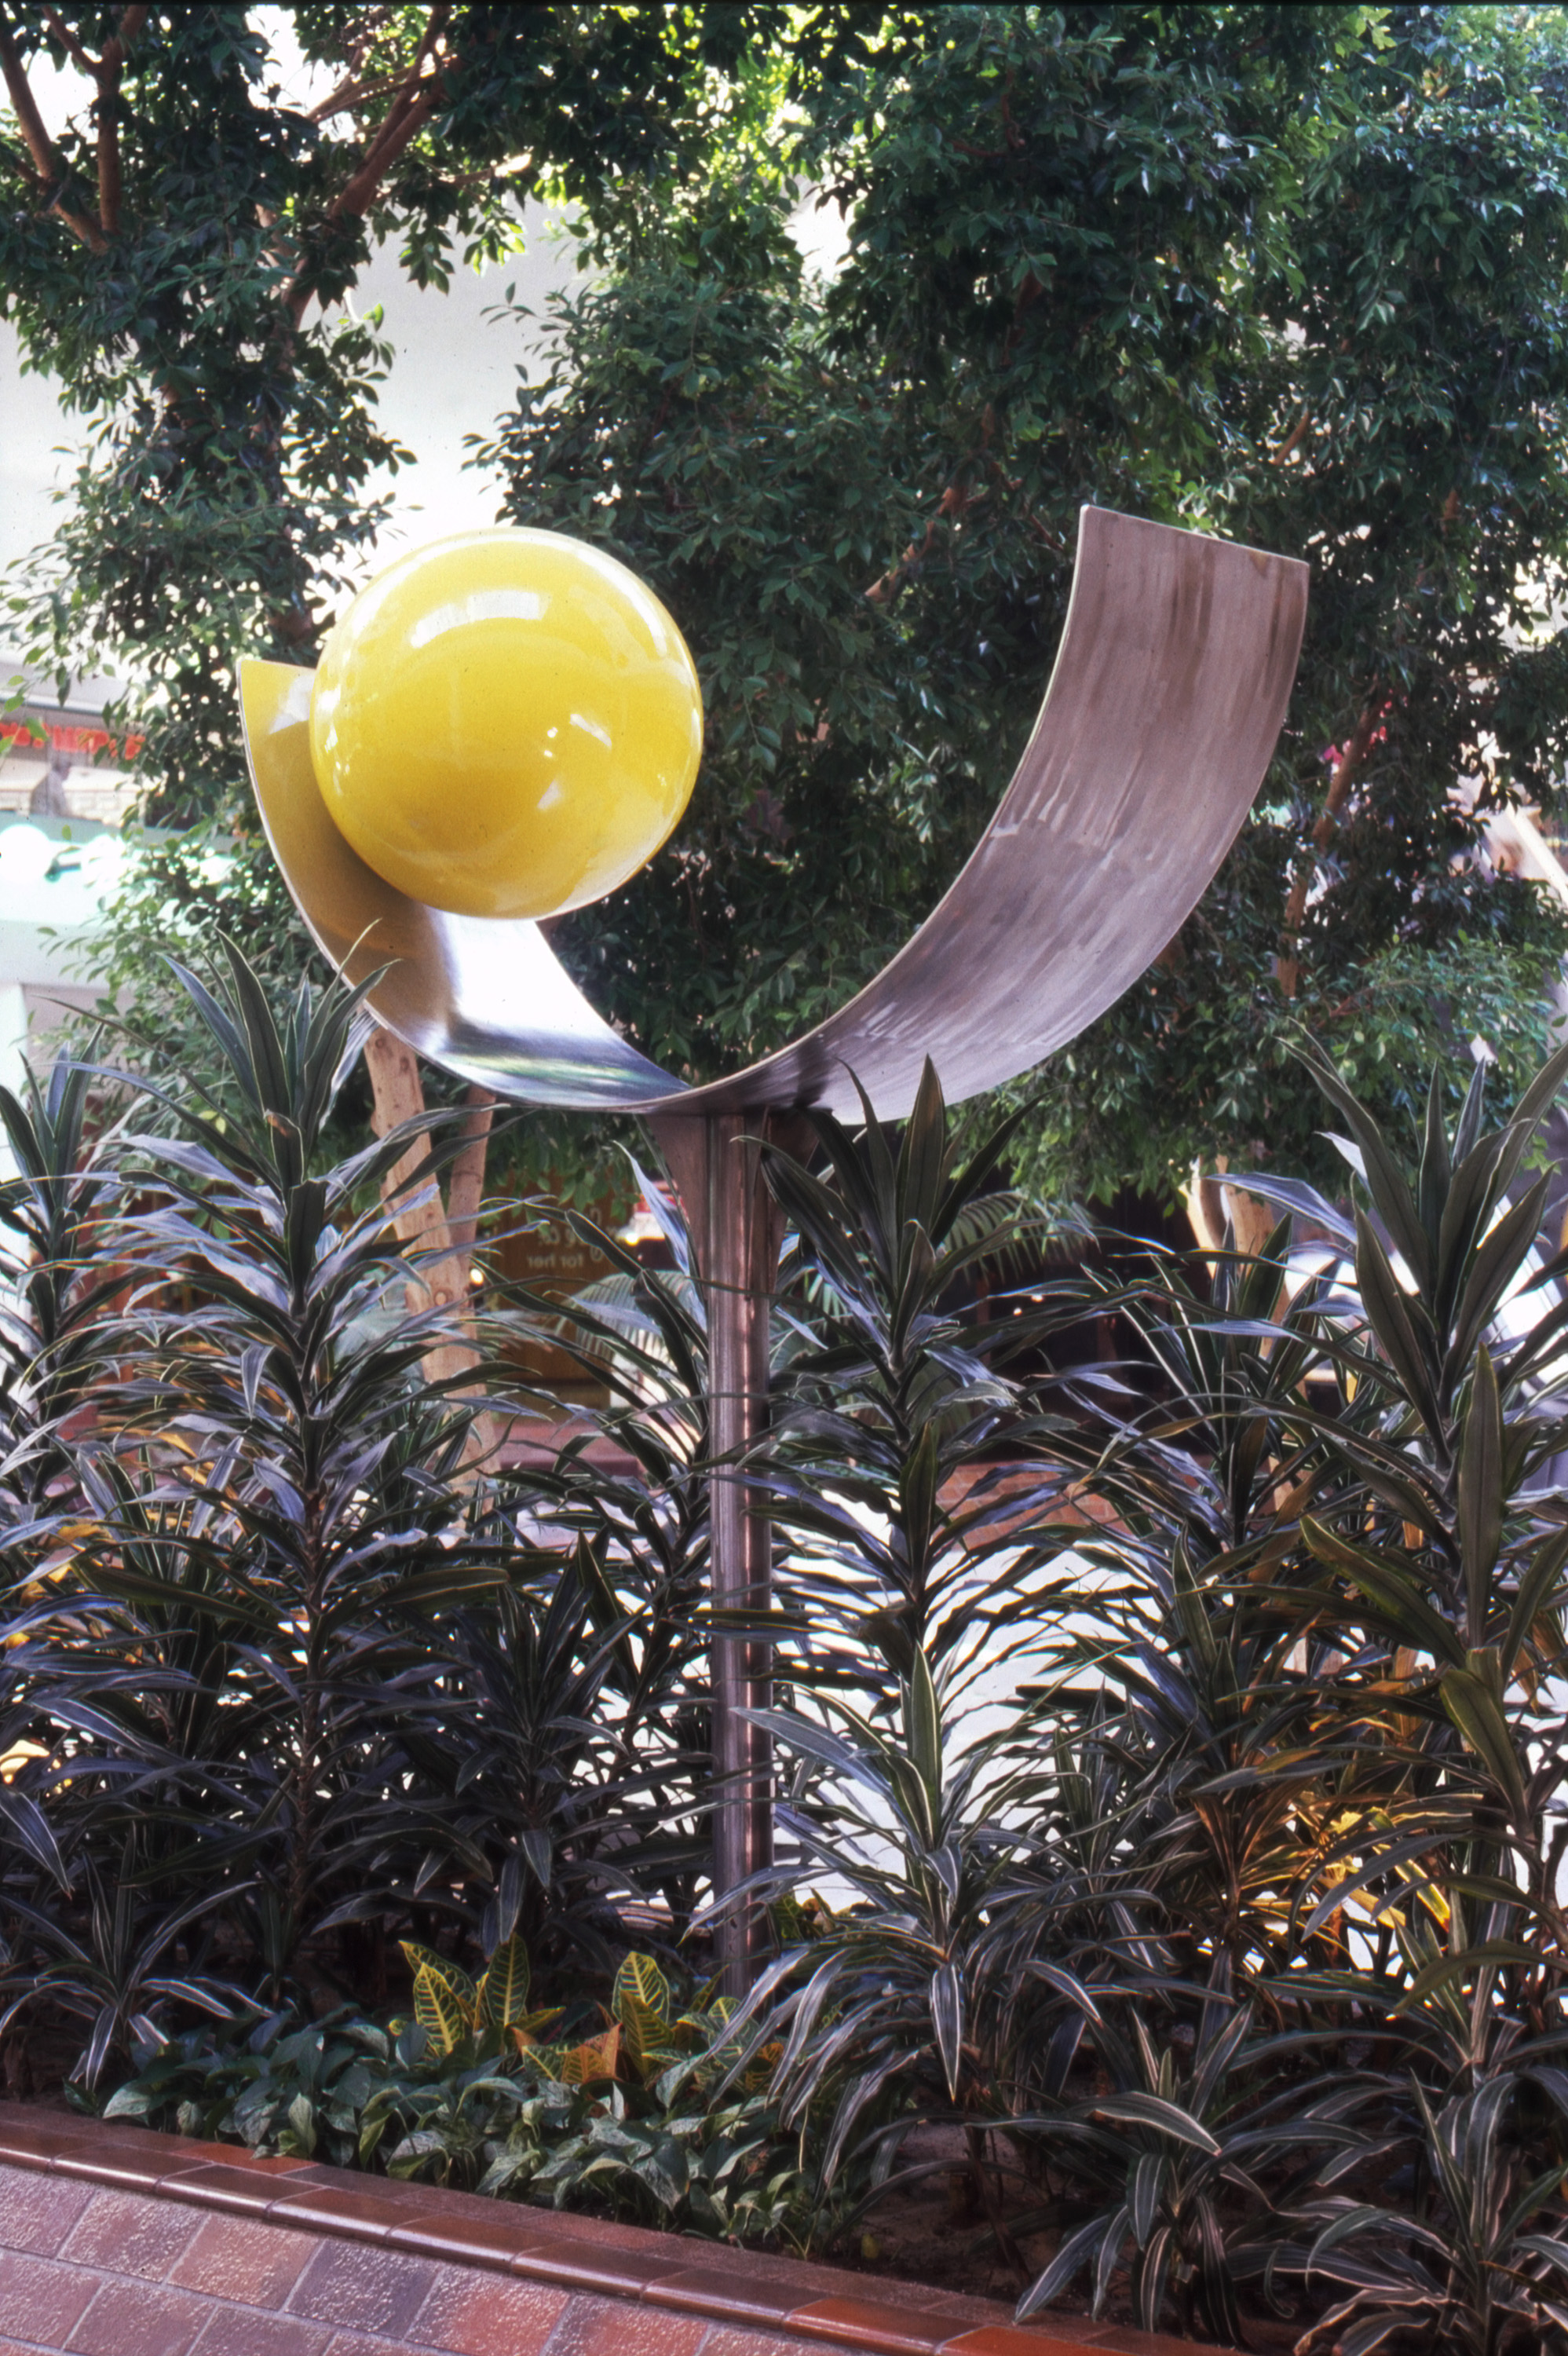 Lunarblitt   1975, steel and aluminum, 91x65x36 in  Installed in 1975 at Oak Park Mall Overland Park, KS Currently in artist's collection